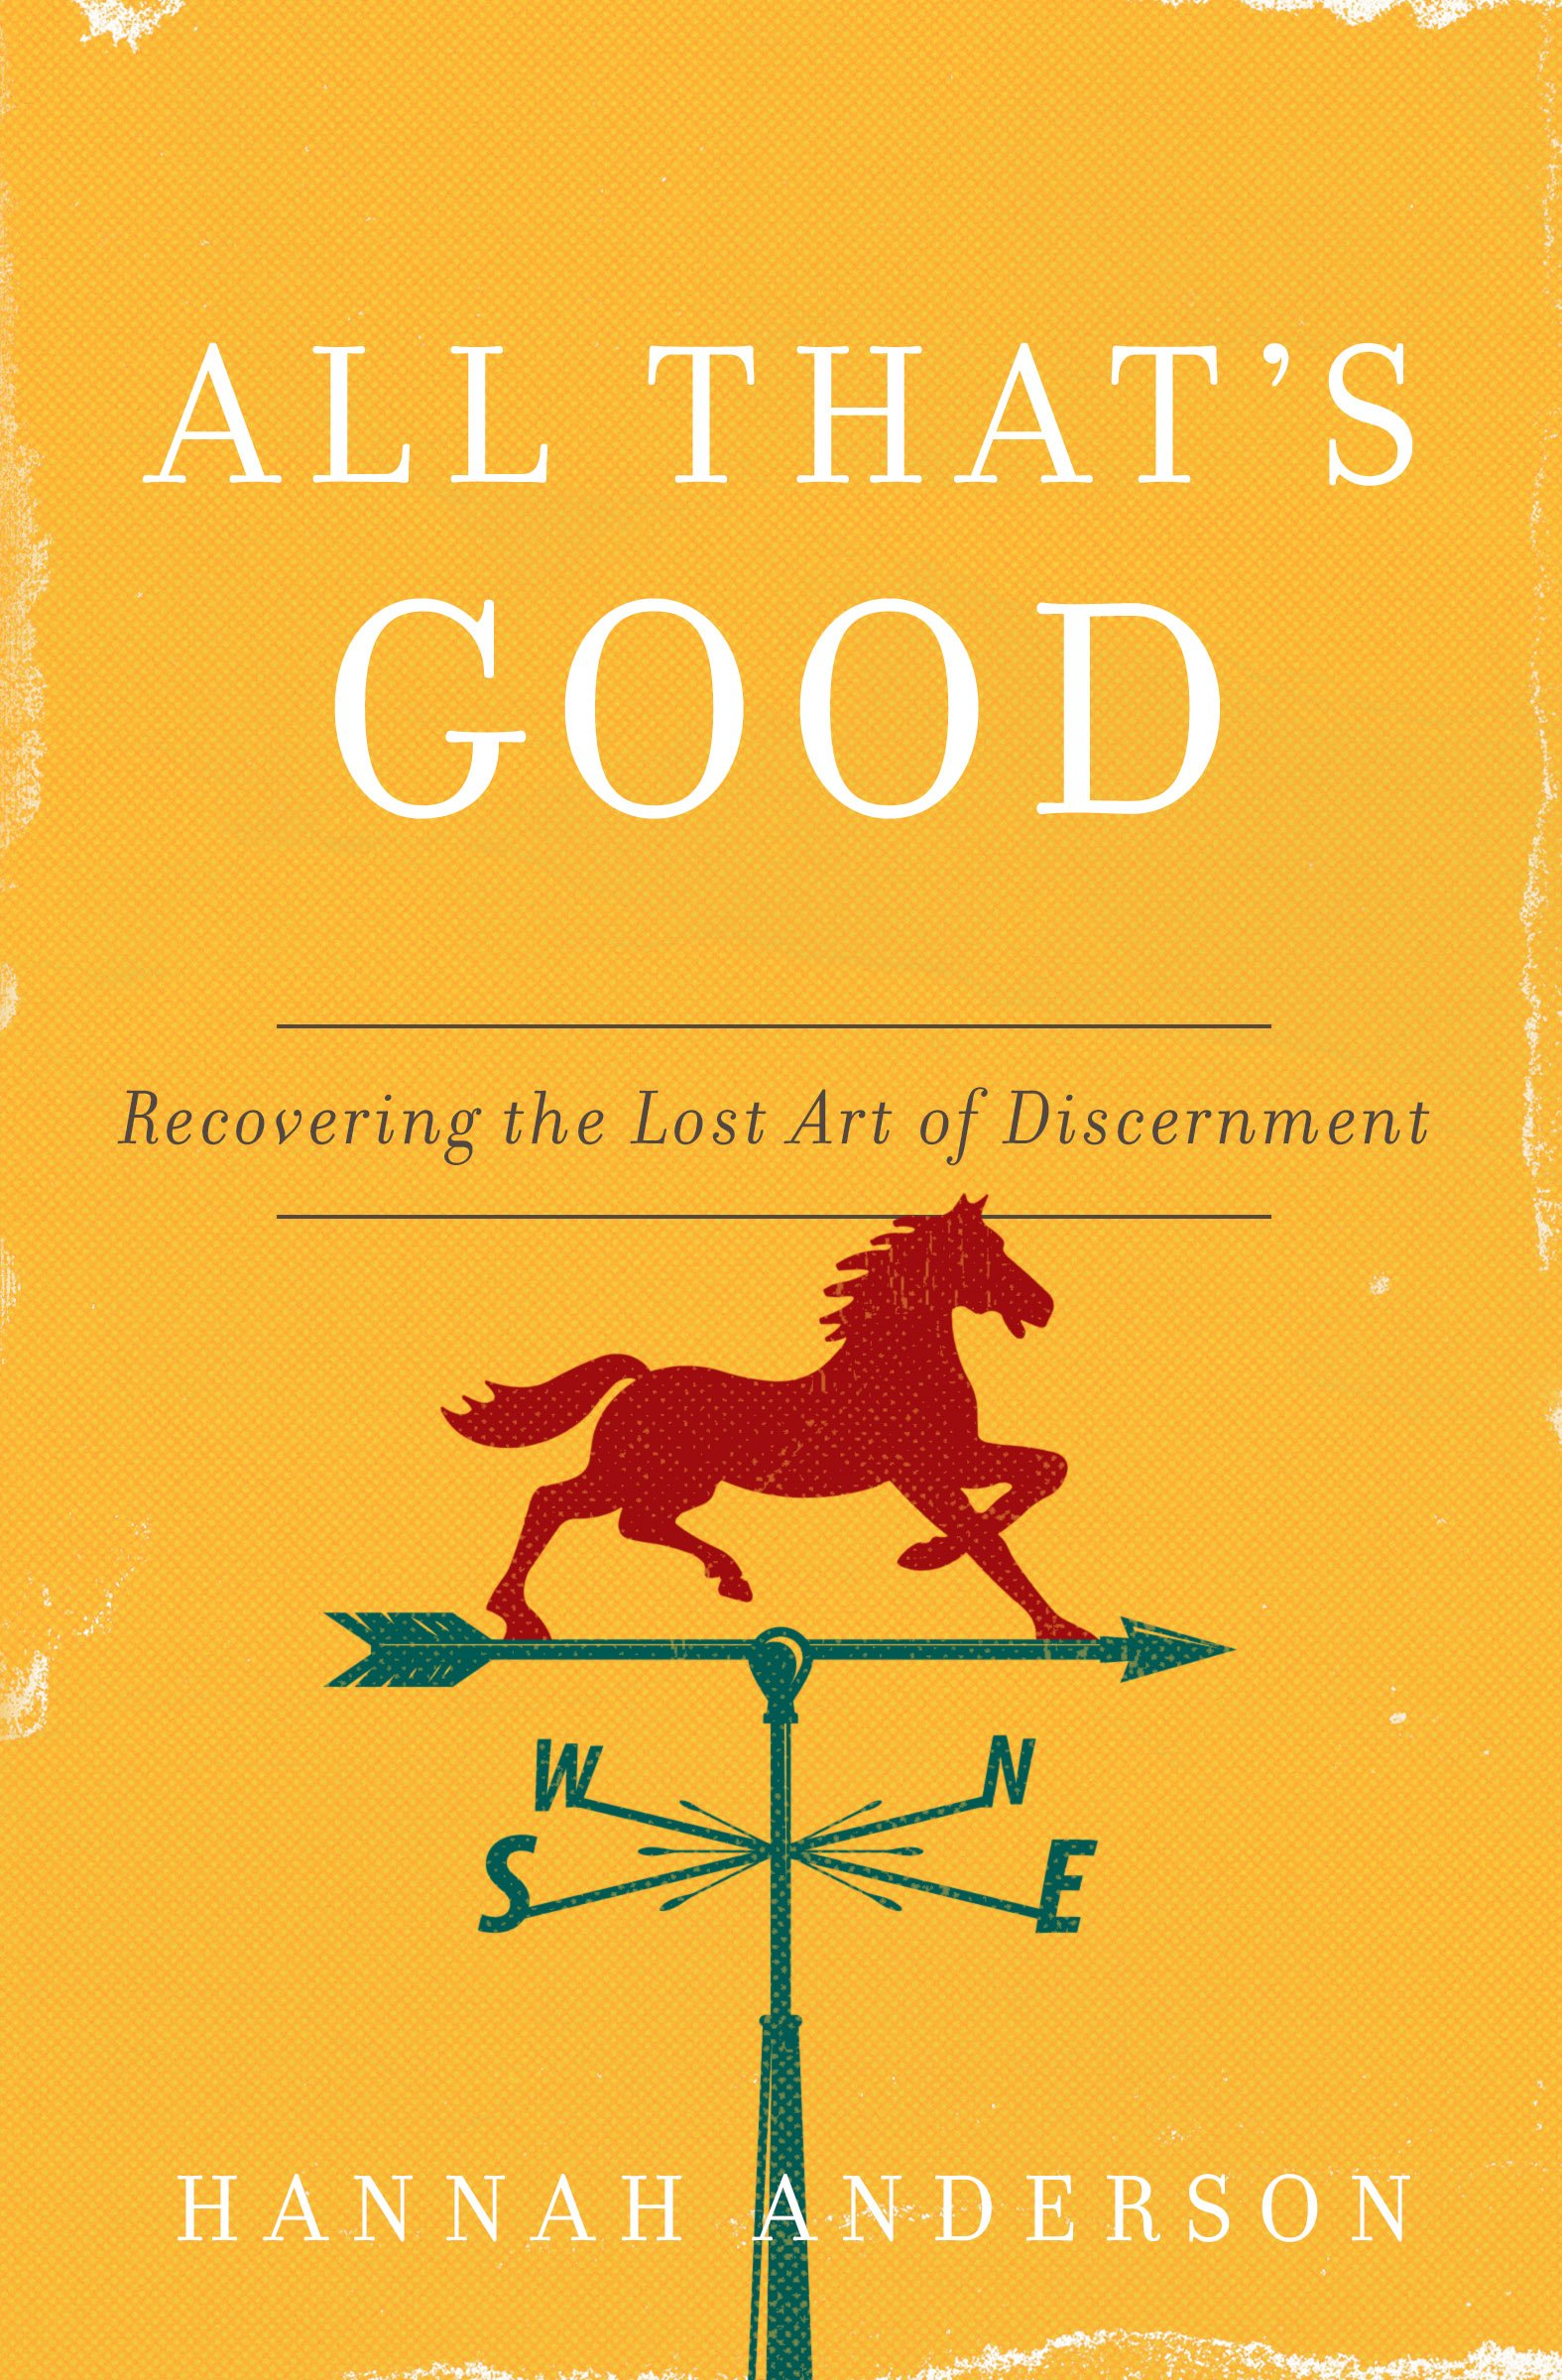 All That's Good: Recovering the Lost Art of Discernment: Anderson, Hannah:  9780802418555: Books - Amazon.ca